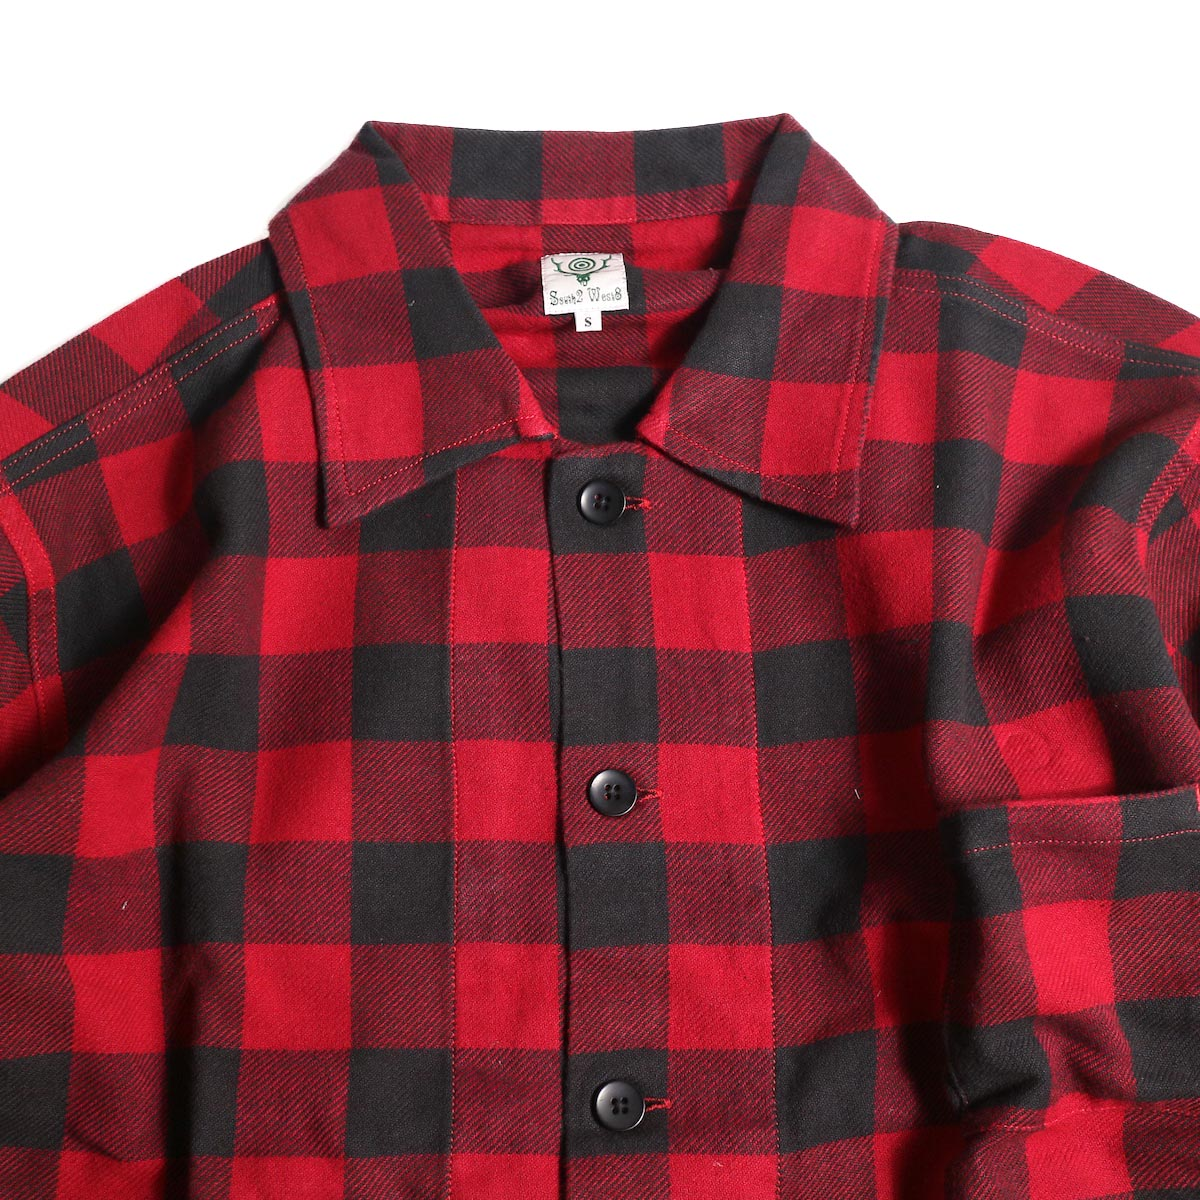 South2 West8 / Hunting Shirt -Plaid Twill (Red/Black)襟